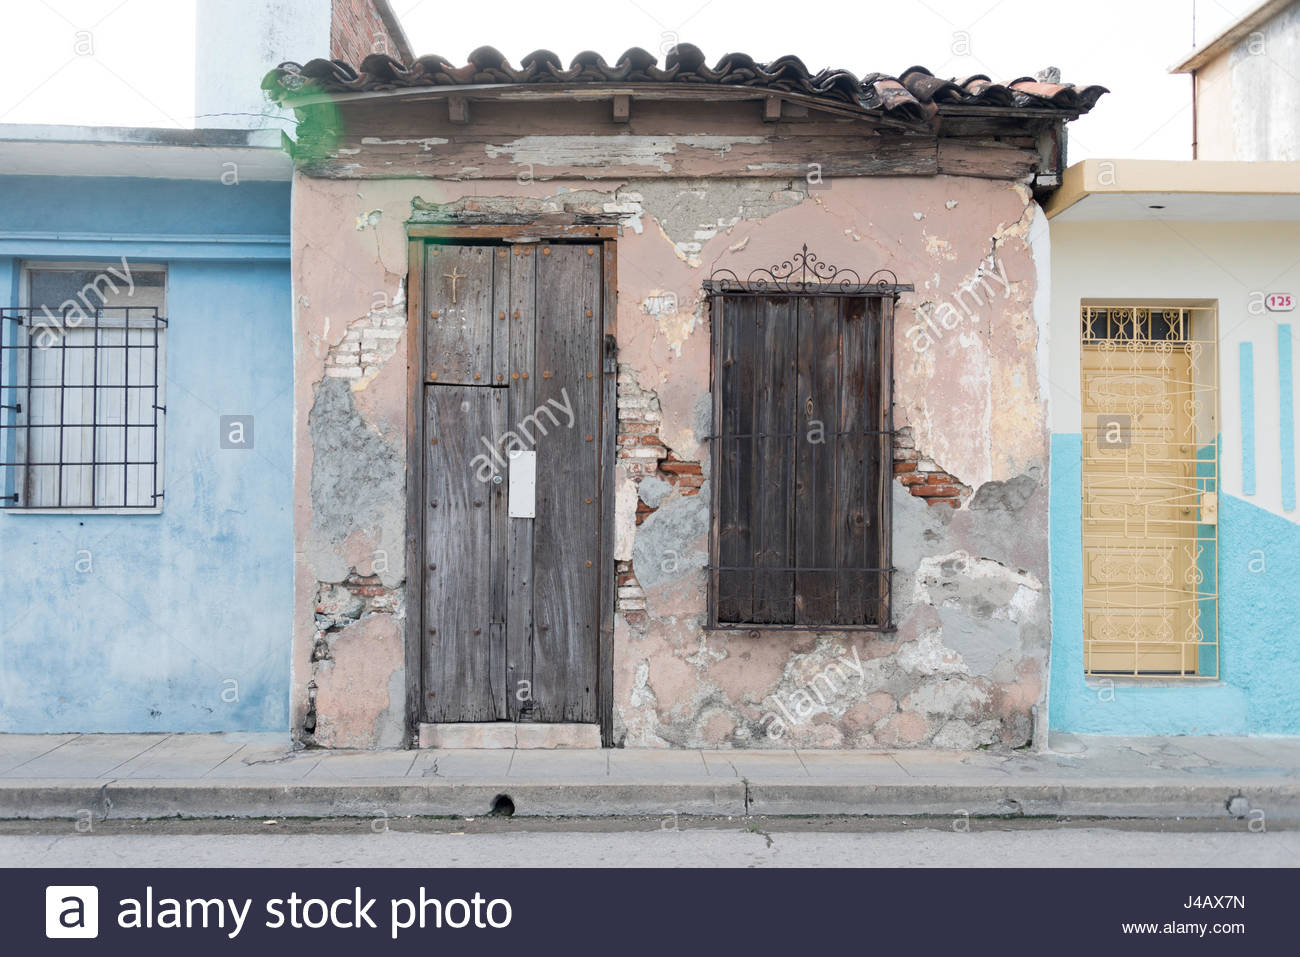 Cuban old weathered and worn out architecture. Urban contrast.  Results of economic hardship on real estate. - Stock Image